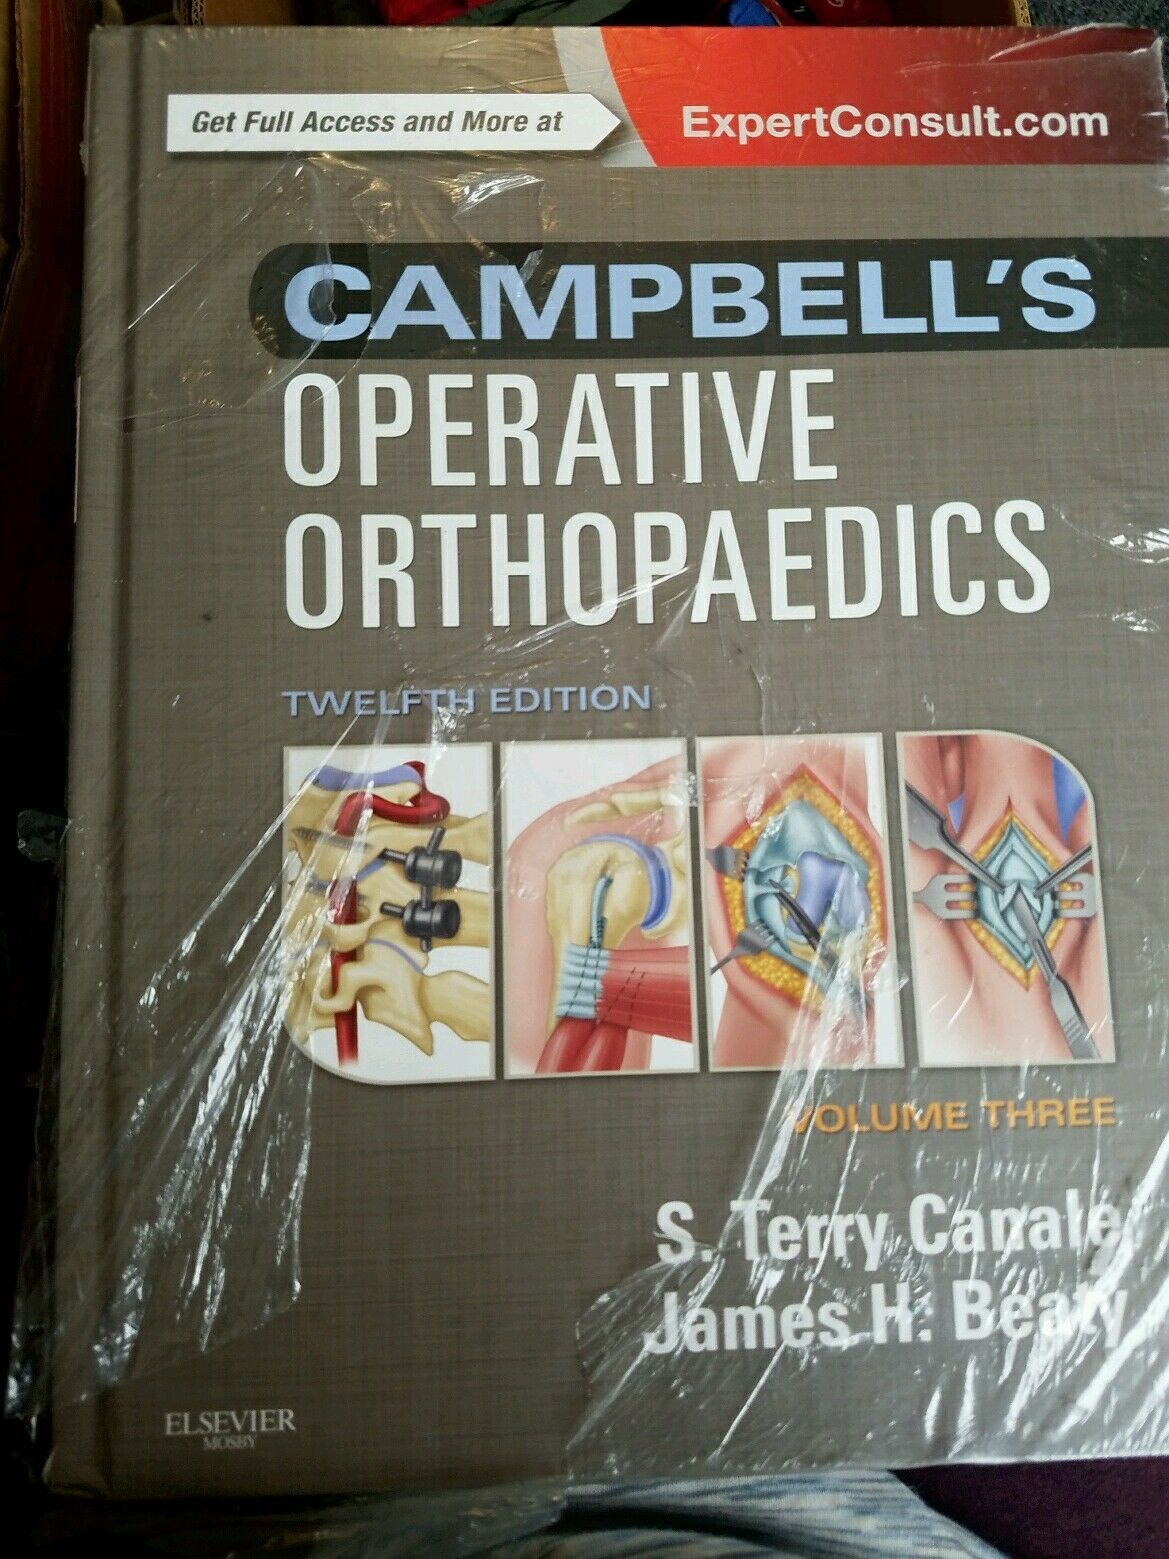 Campbells Operative Orthopaedics Ebook